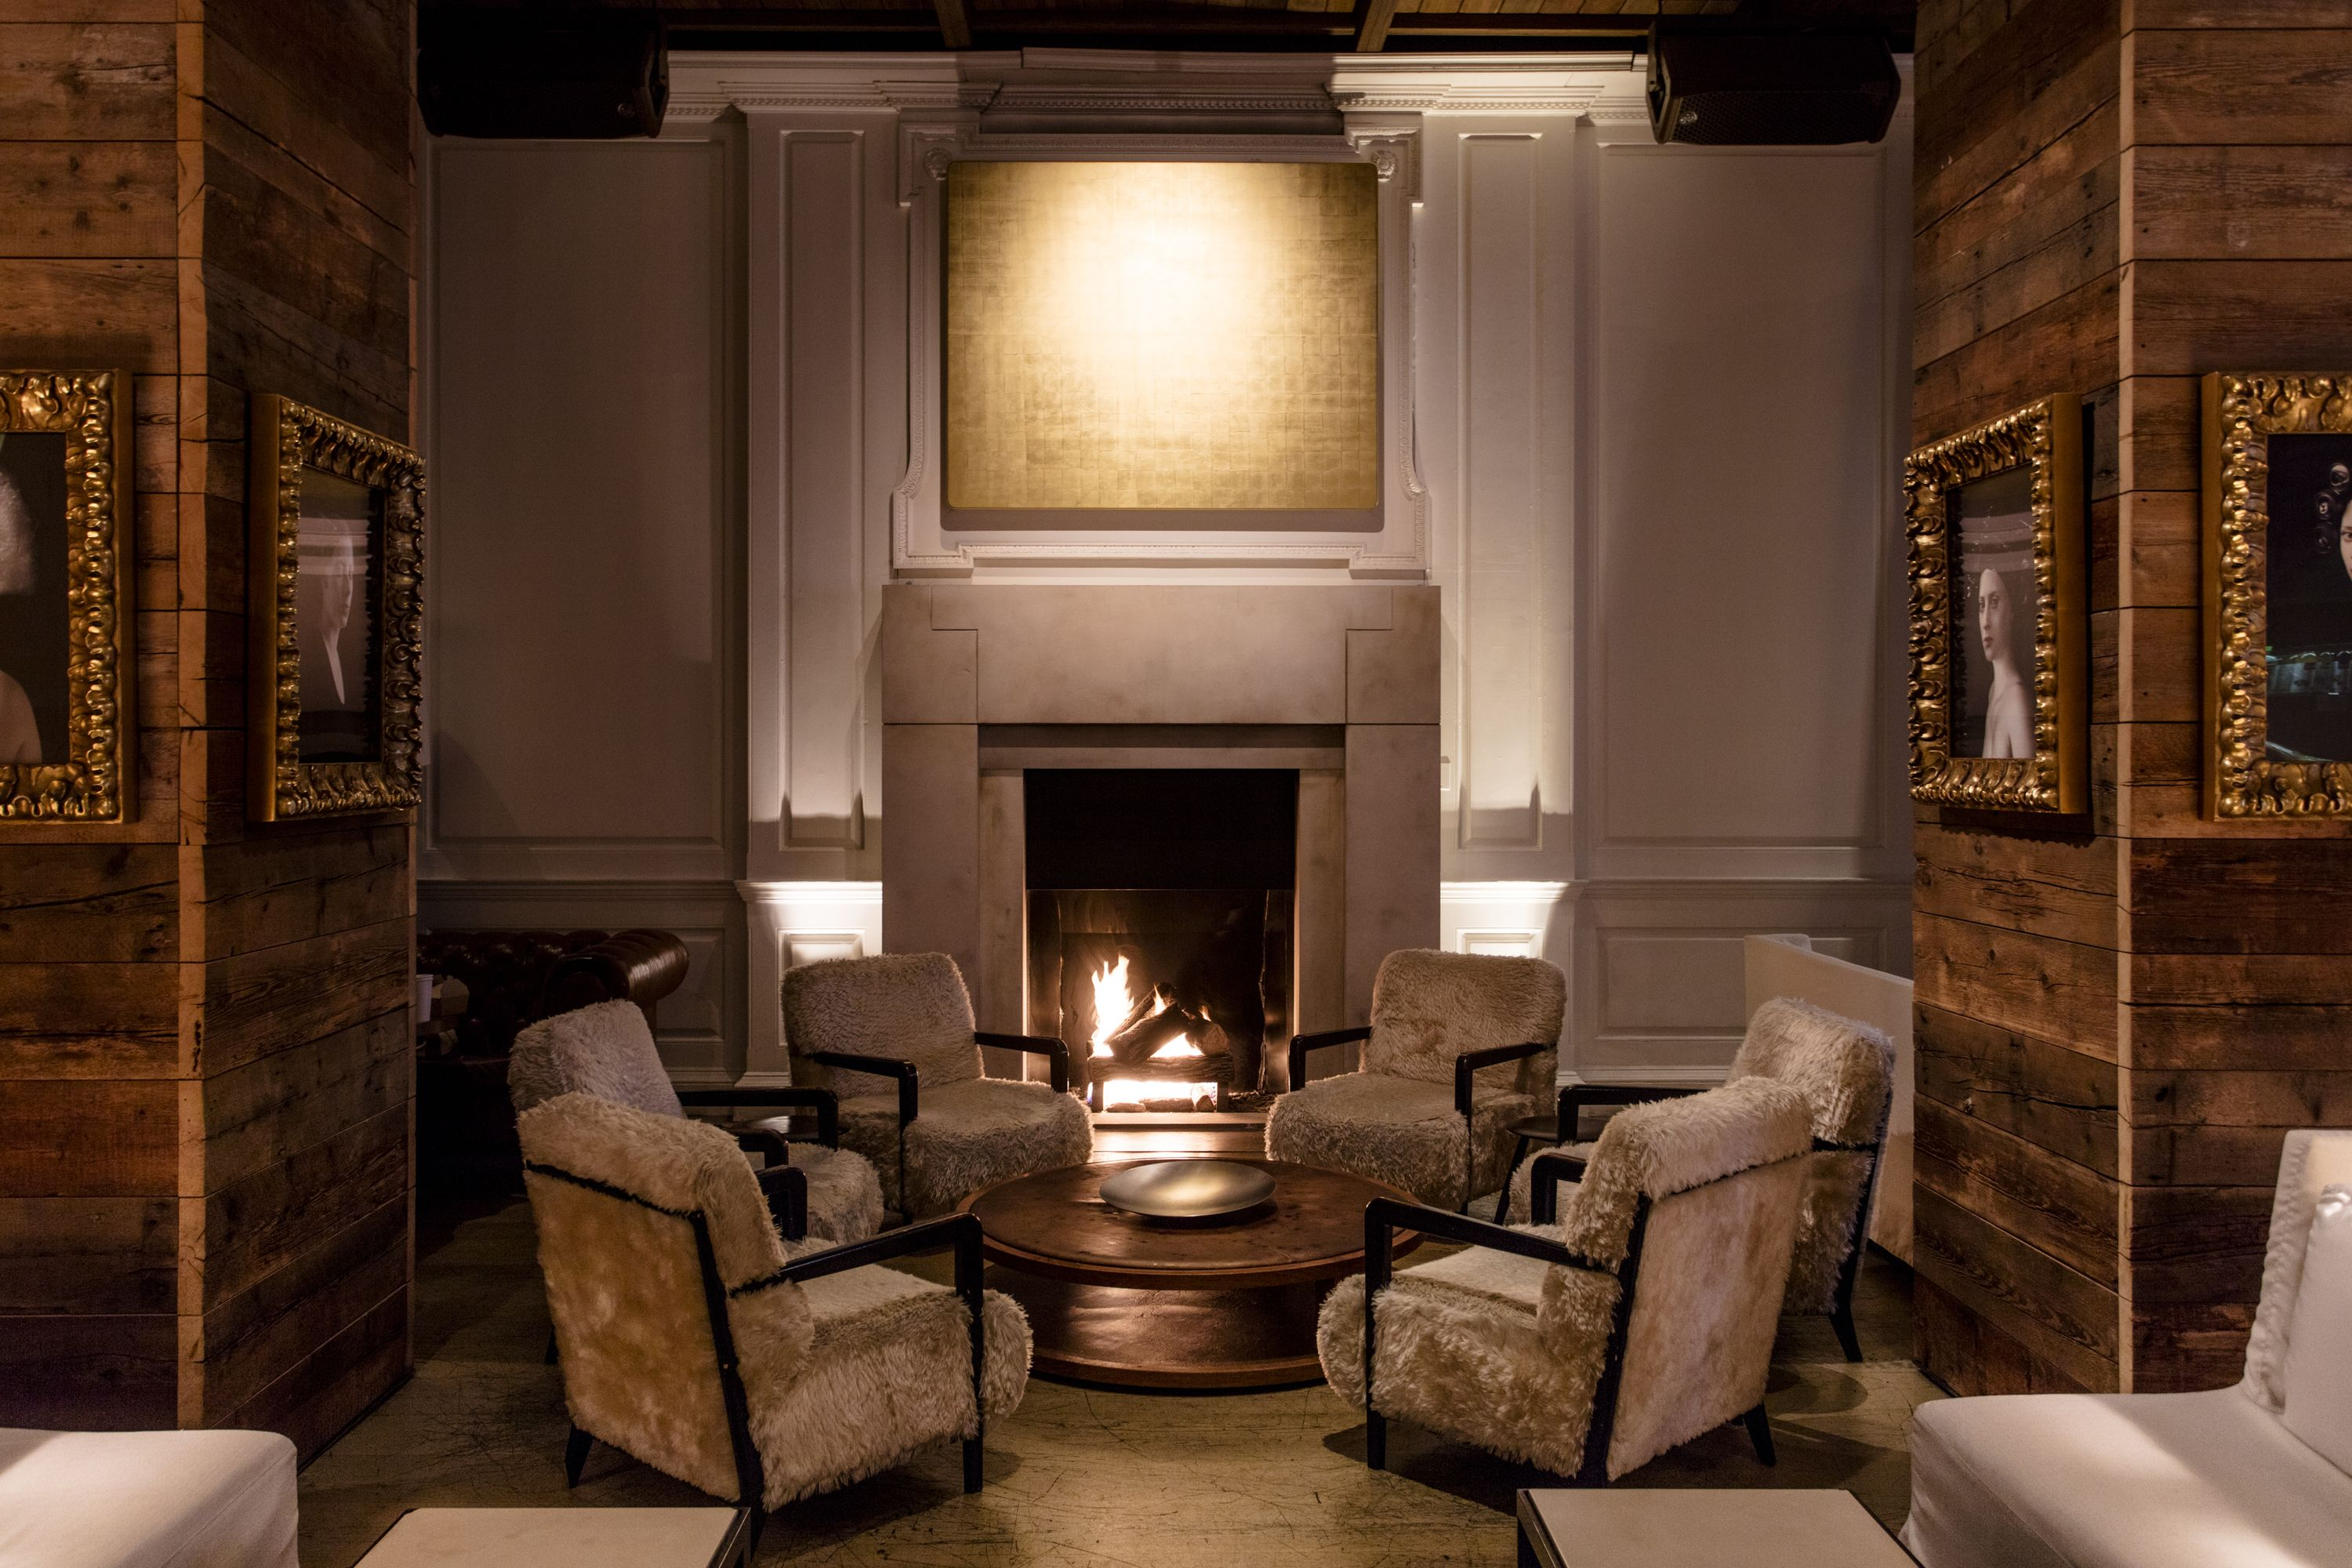 30 Chicago Bars And Restaurants With Fireplaces Chicago Hotels Chicago Restaurants Fireplace Design